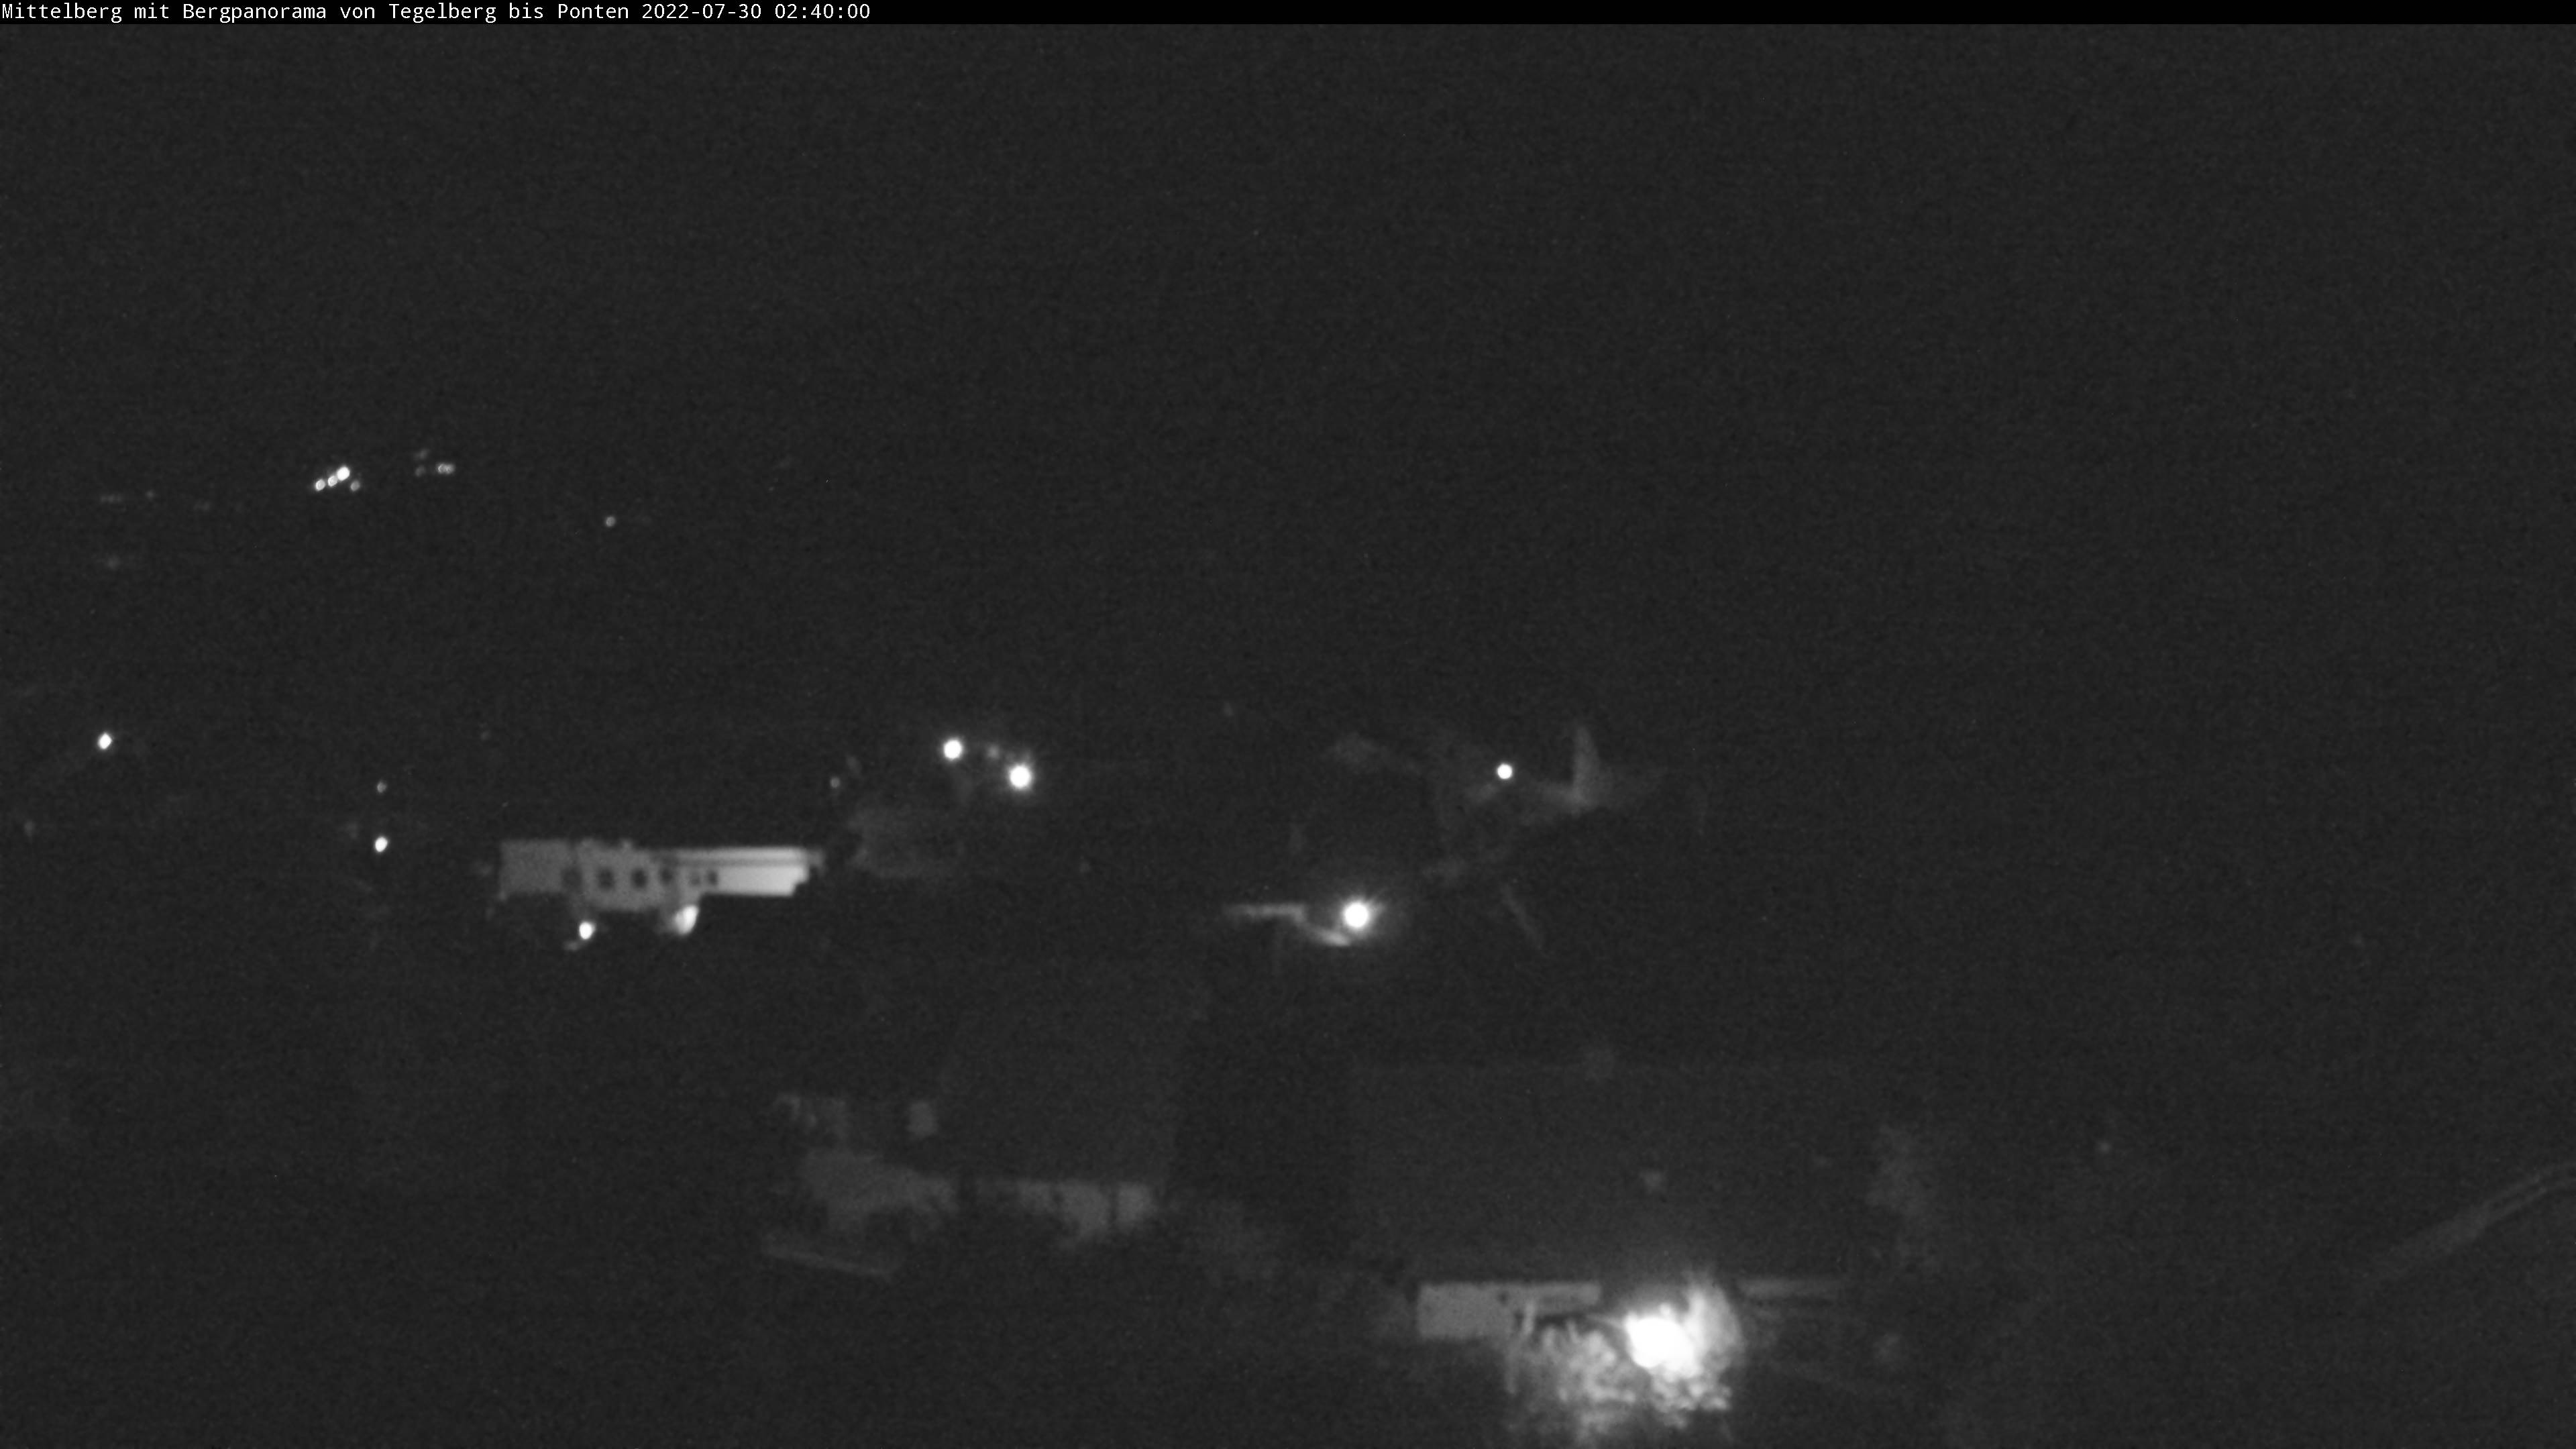 Mittelberg Bergpanorama Webcam